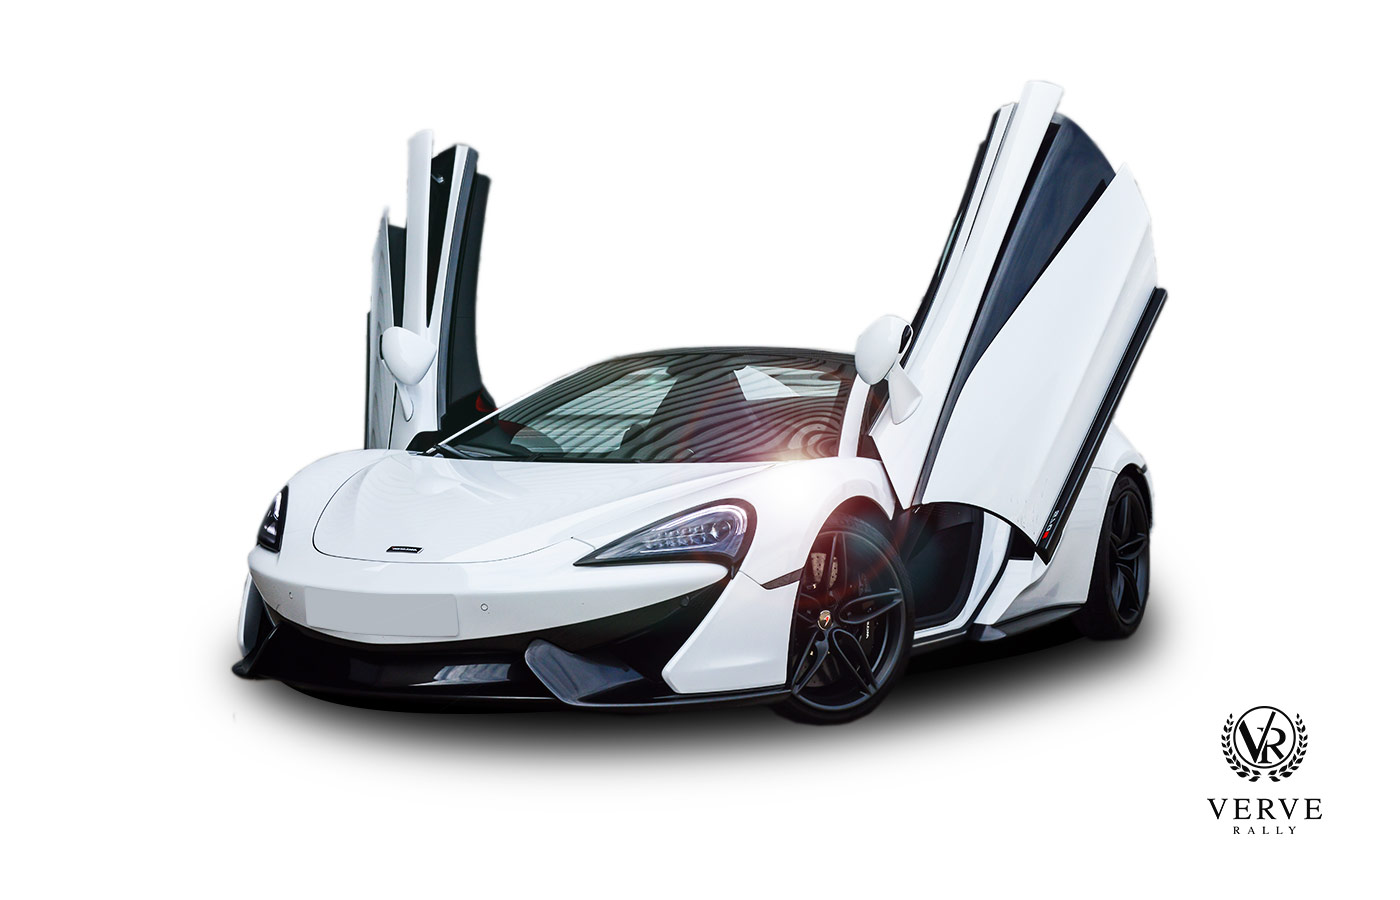 Verve-Rally-GT-Supercars---McLaren-570S-Spider-Wings